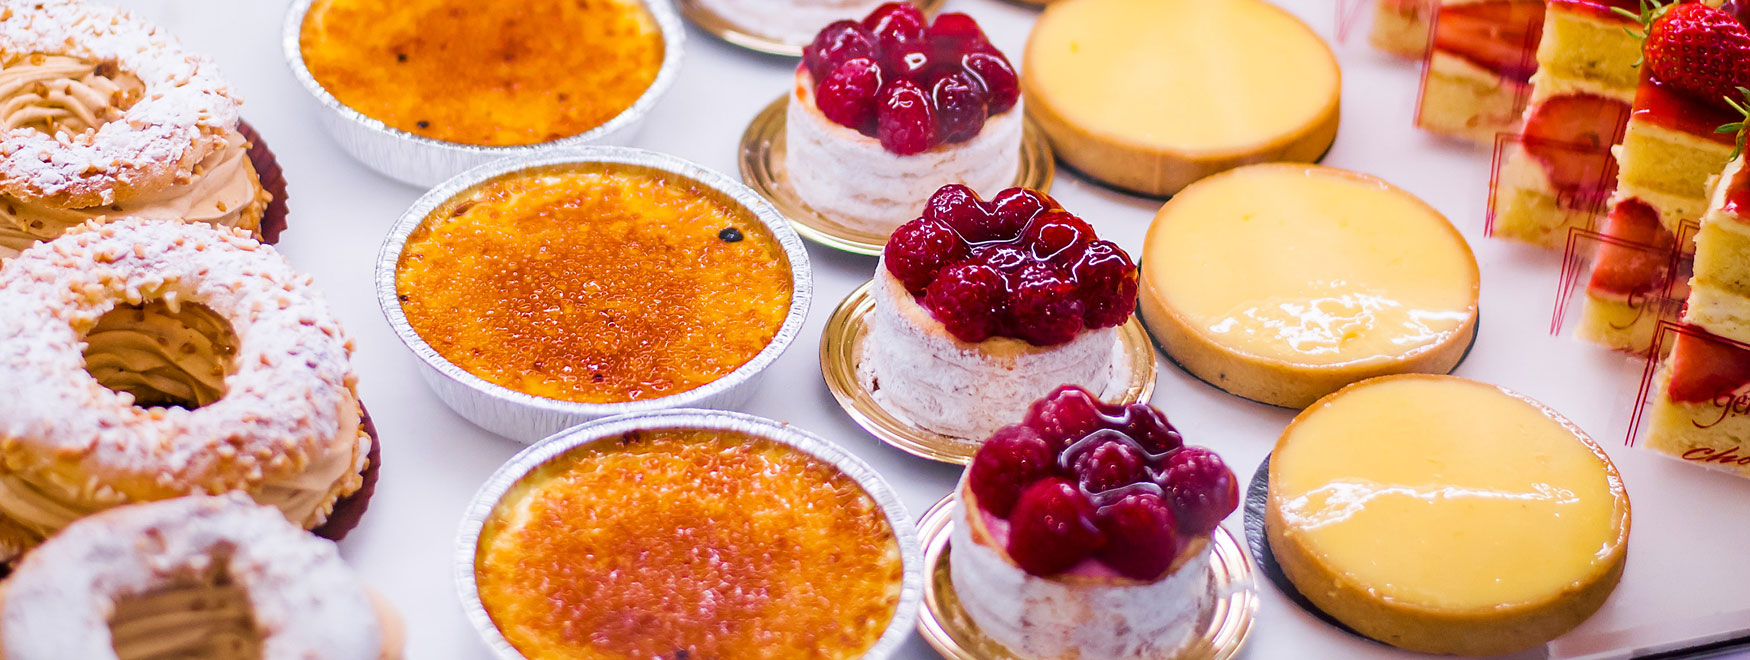 Workshop for Tasting French Pastries